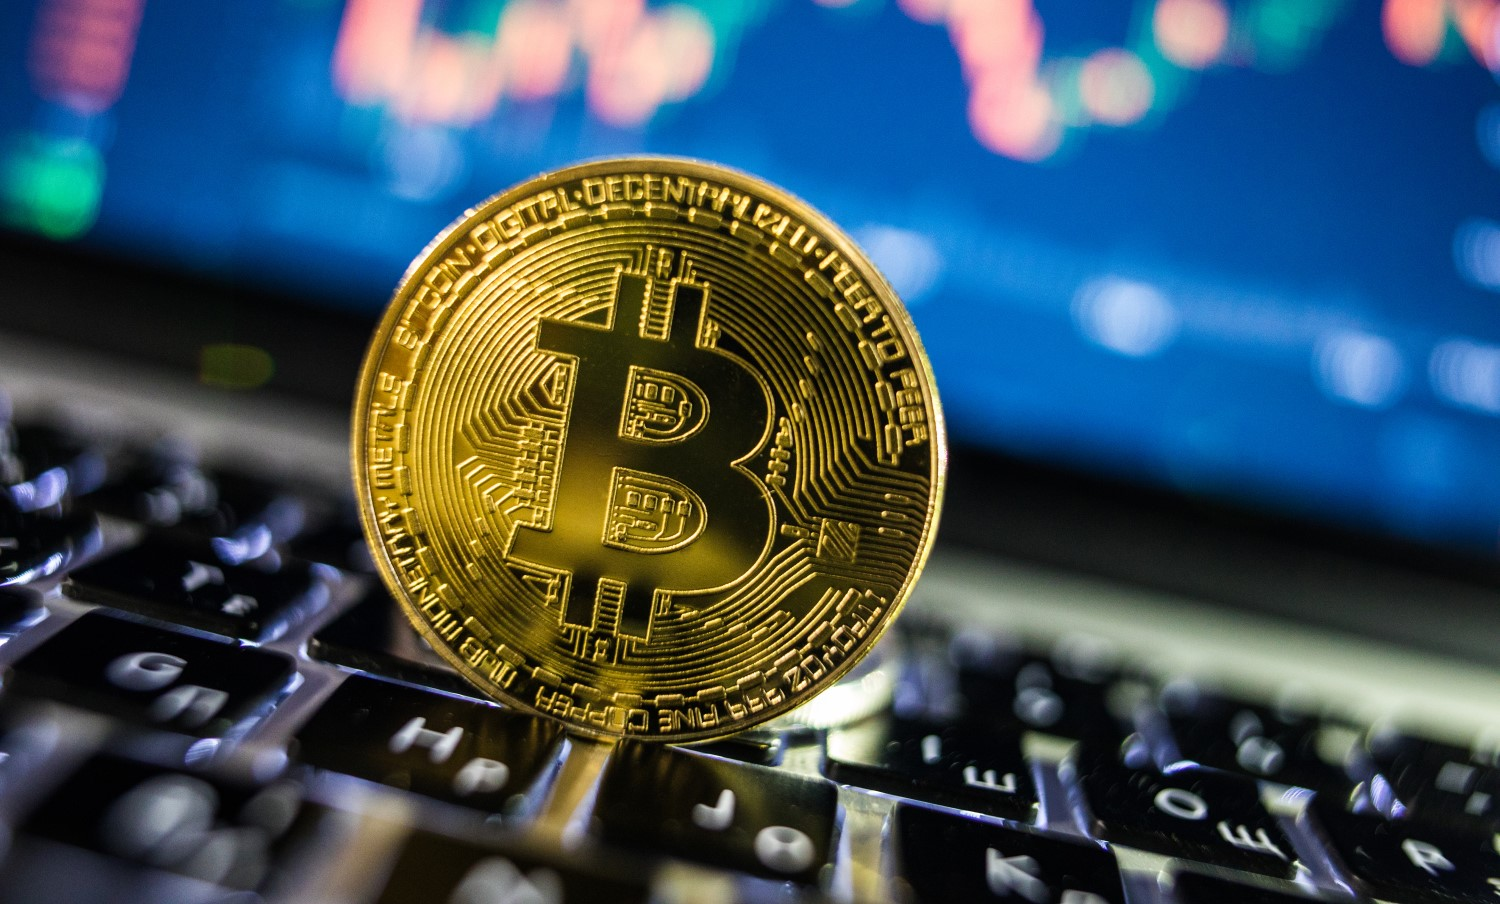 Briton who lost 7,500 BTC will use artificial intelligence to find it